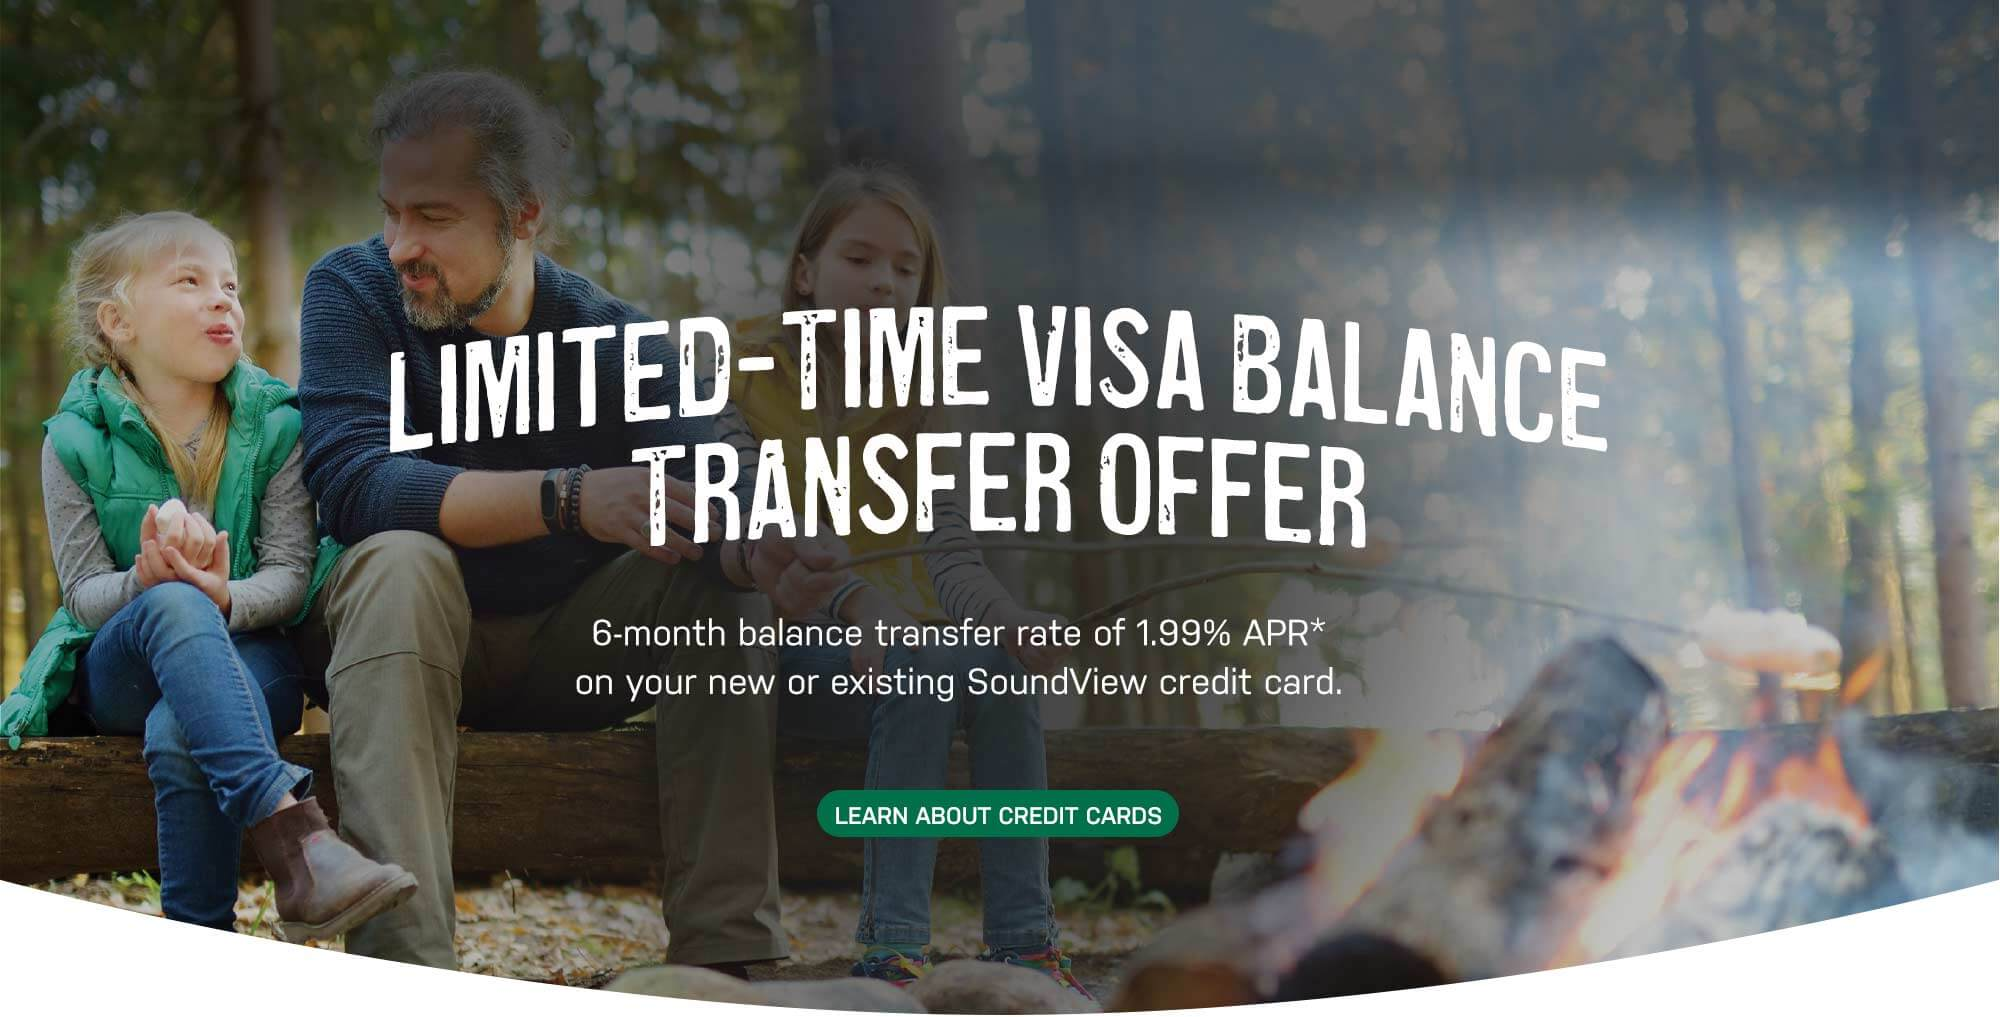 Limited-Time Visa Balance Transfer Offer. 6-month balance transfer rate of 1.99% APR* on your new or existing SoundView credit card. Learn About Credit Cards